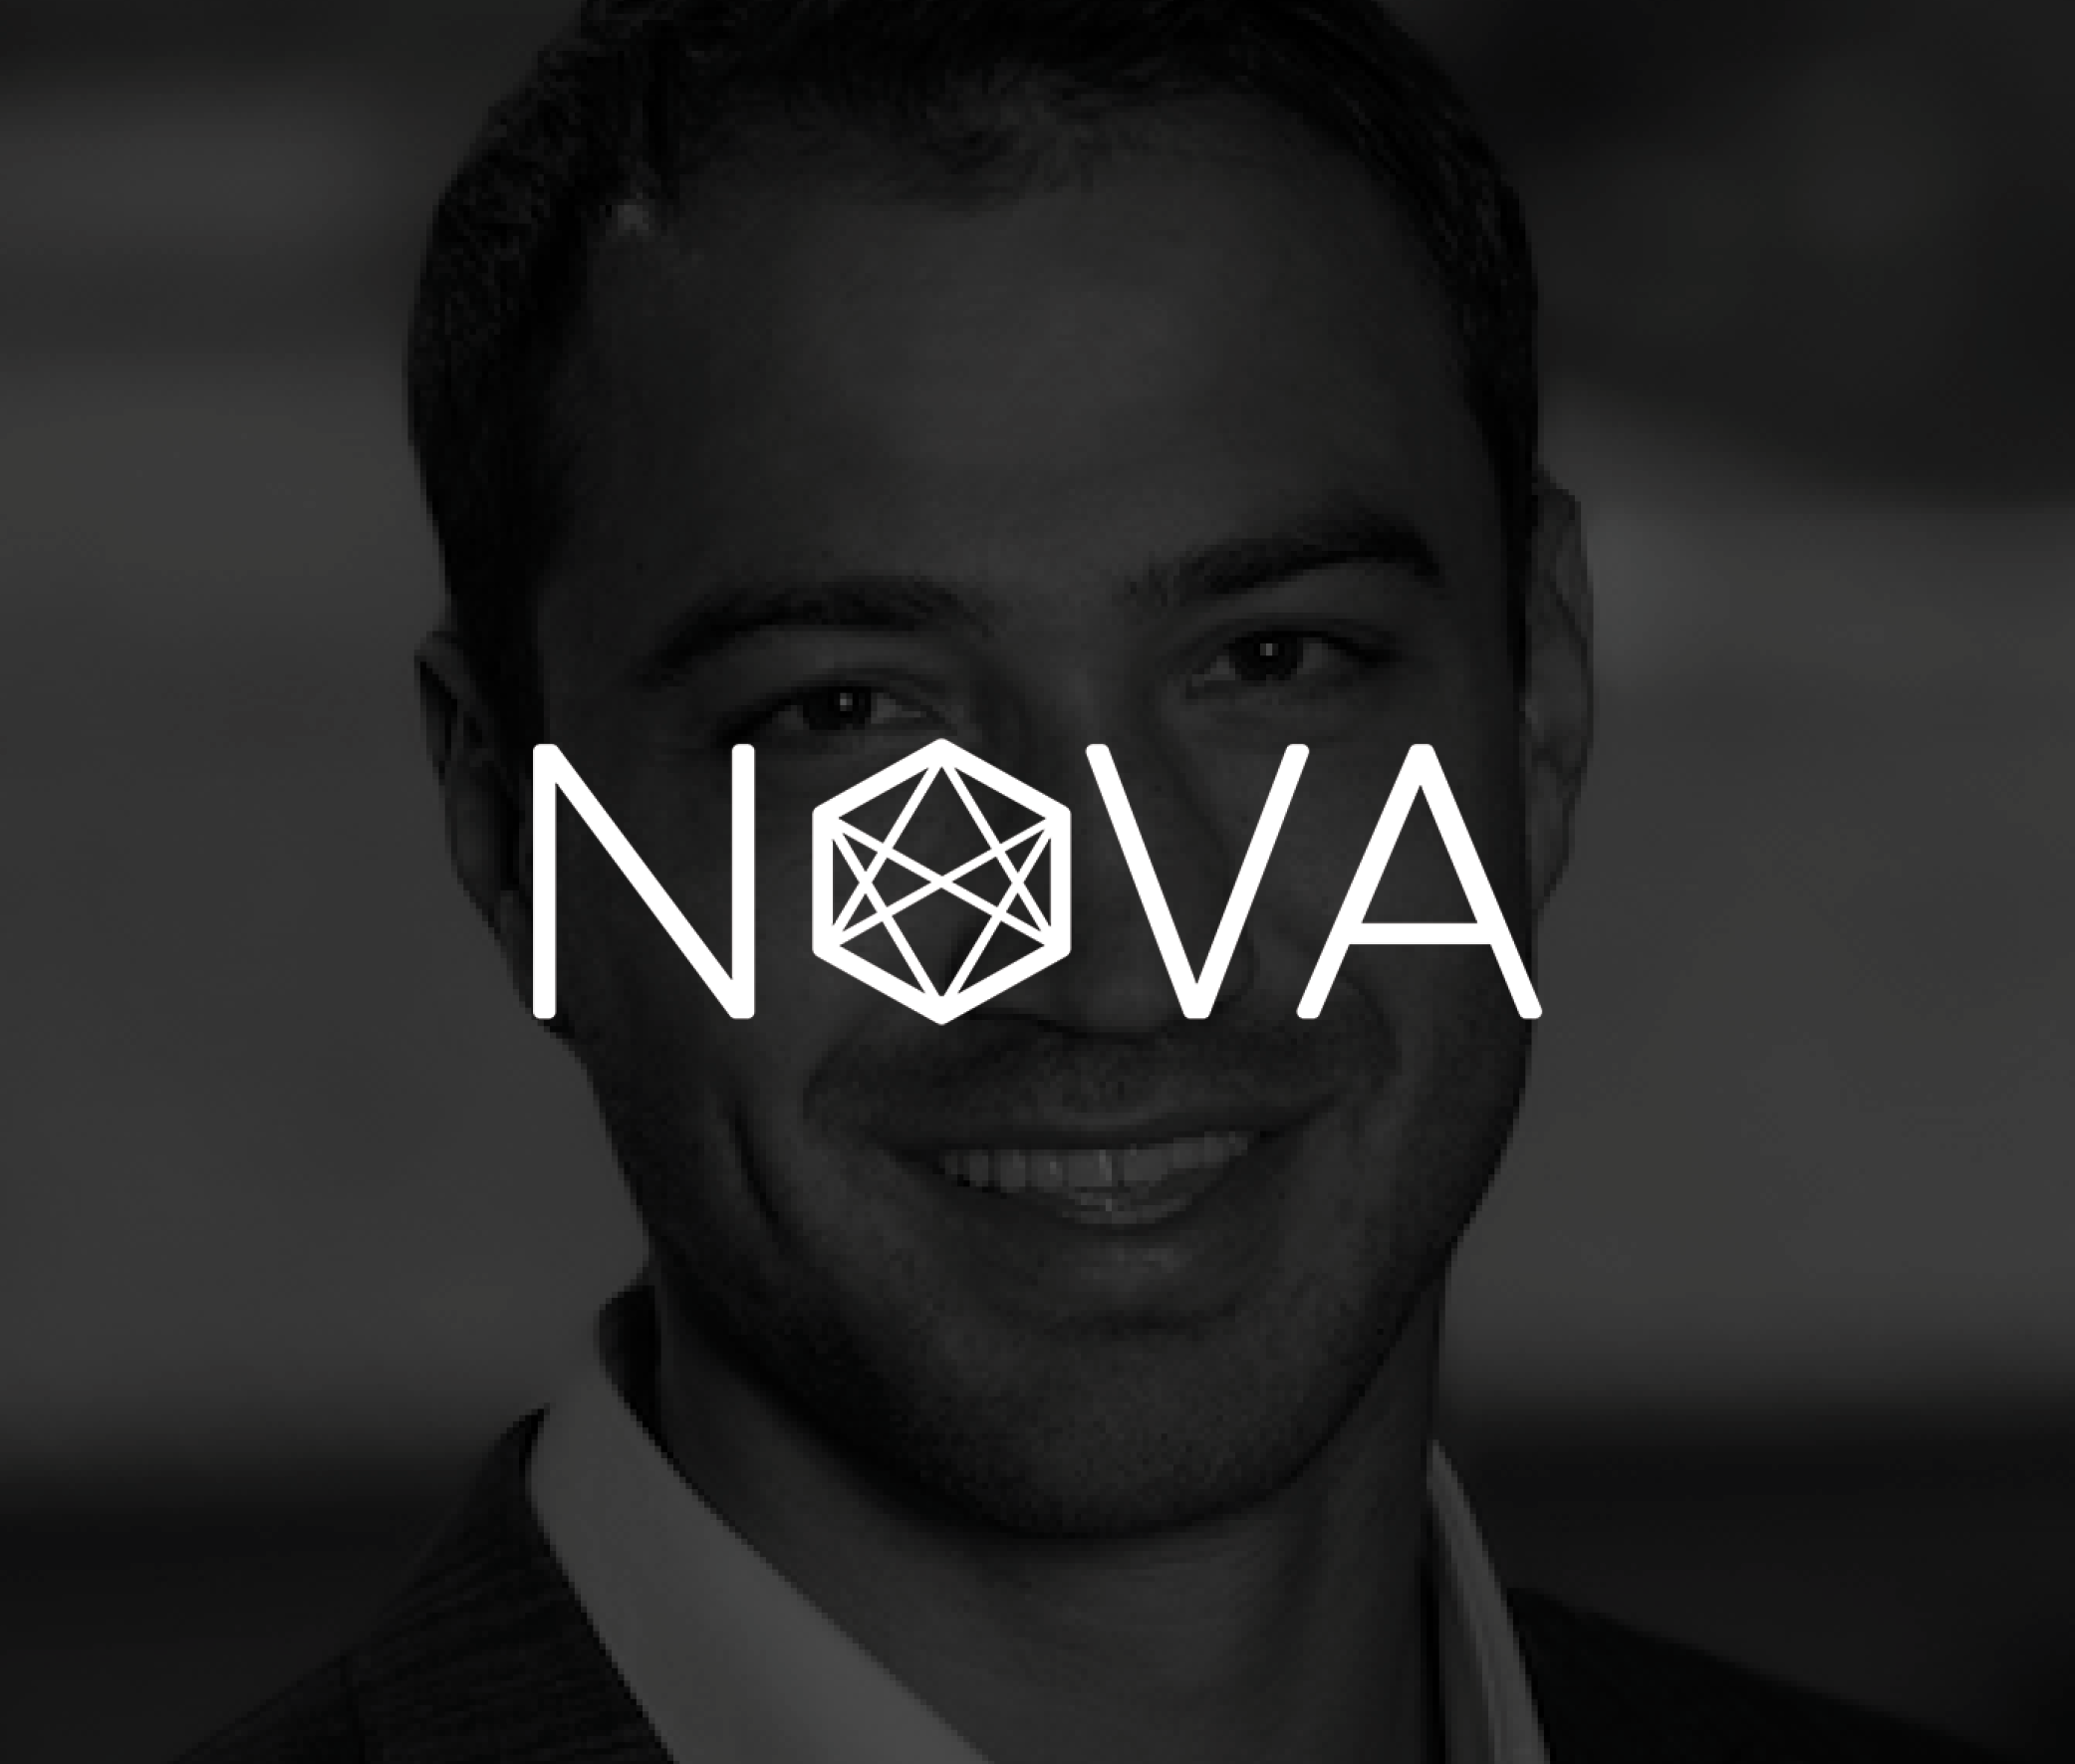 """""""They are true masters of their craft, comfortable going deep down the strategy trenches and then surfacing with a narrative that pulls all the strings together: How we talk about our strategy, what is our long-term vision and what we want our business to stand for. Simply awesome.""""    Misha Espiov - Founder, CEO, Nova"""